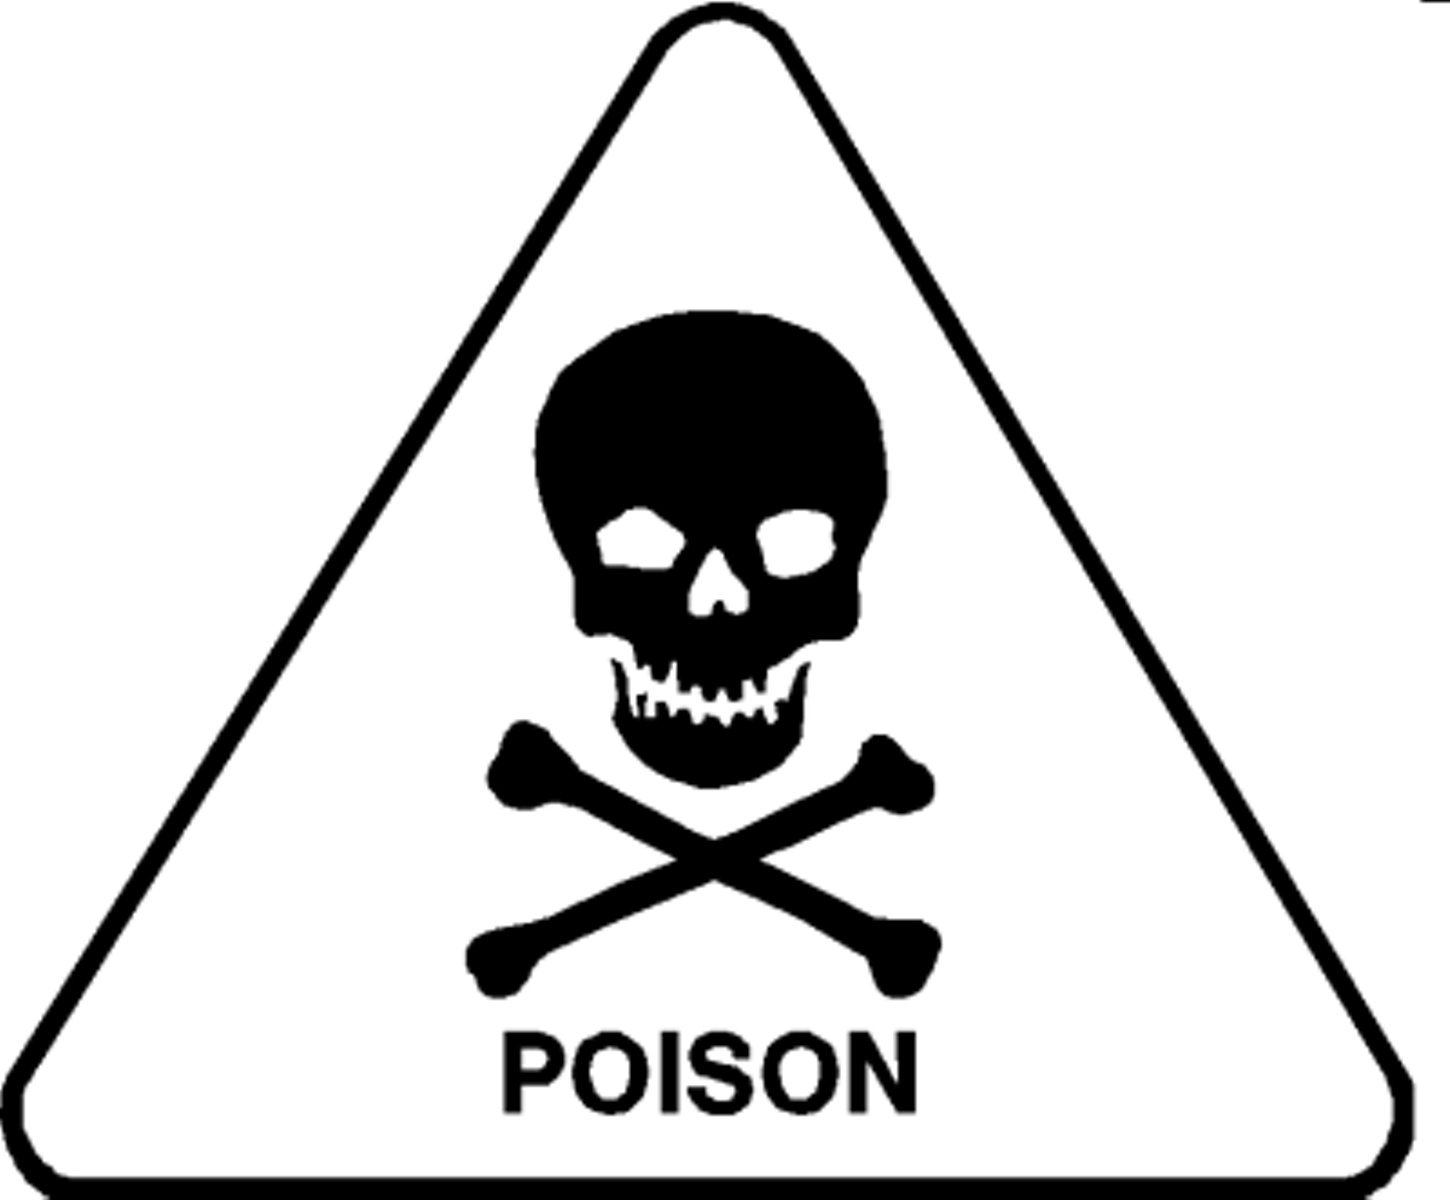 Free Poisonous Chemicals Cliparts Download Free Clip Art